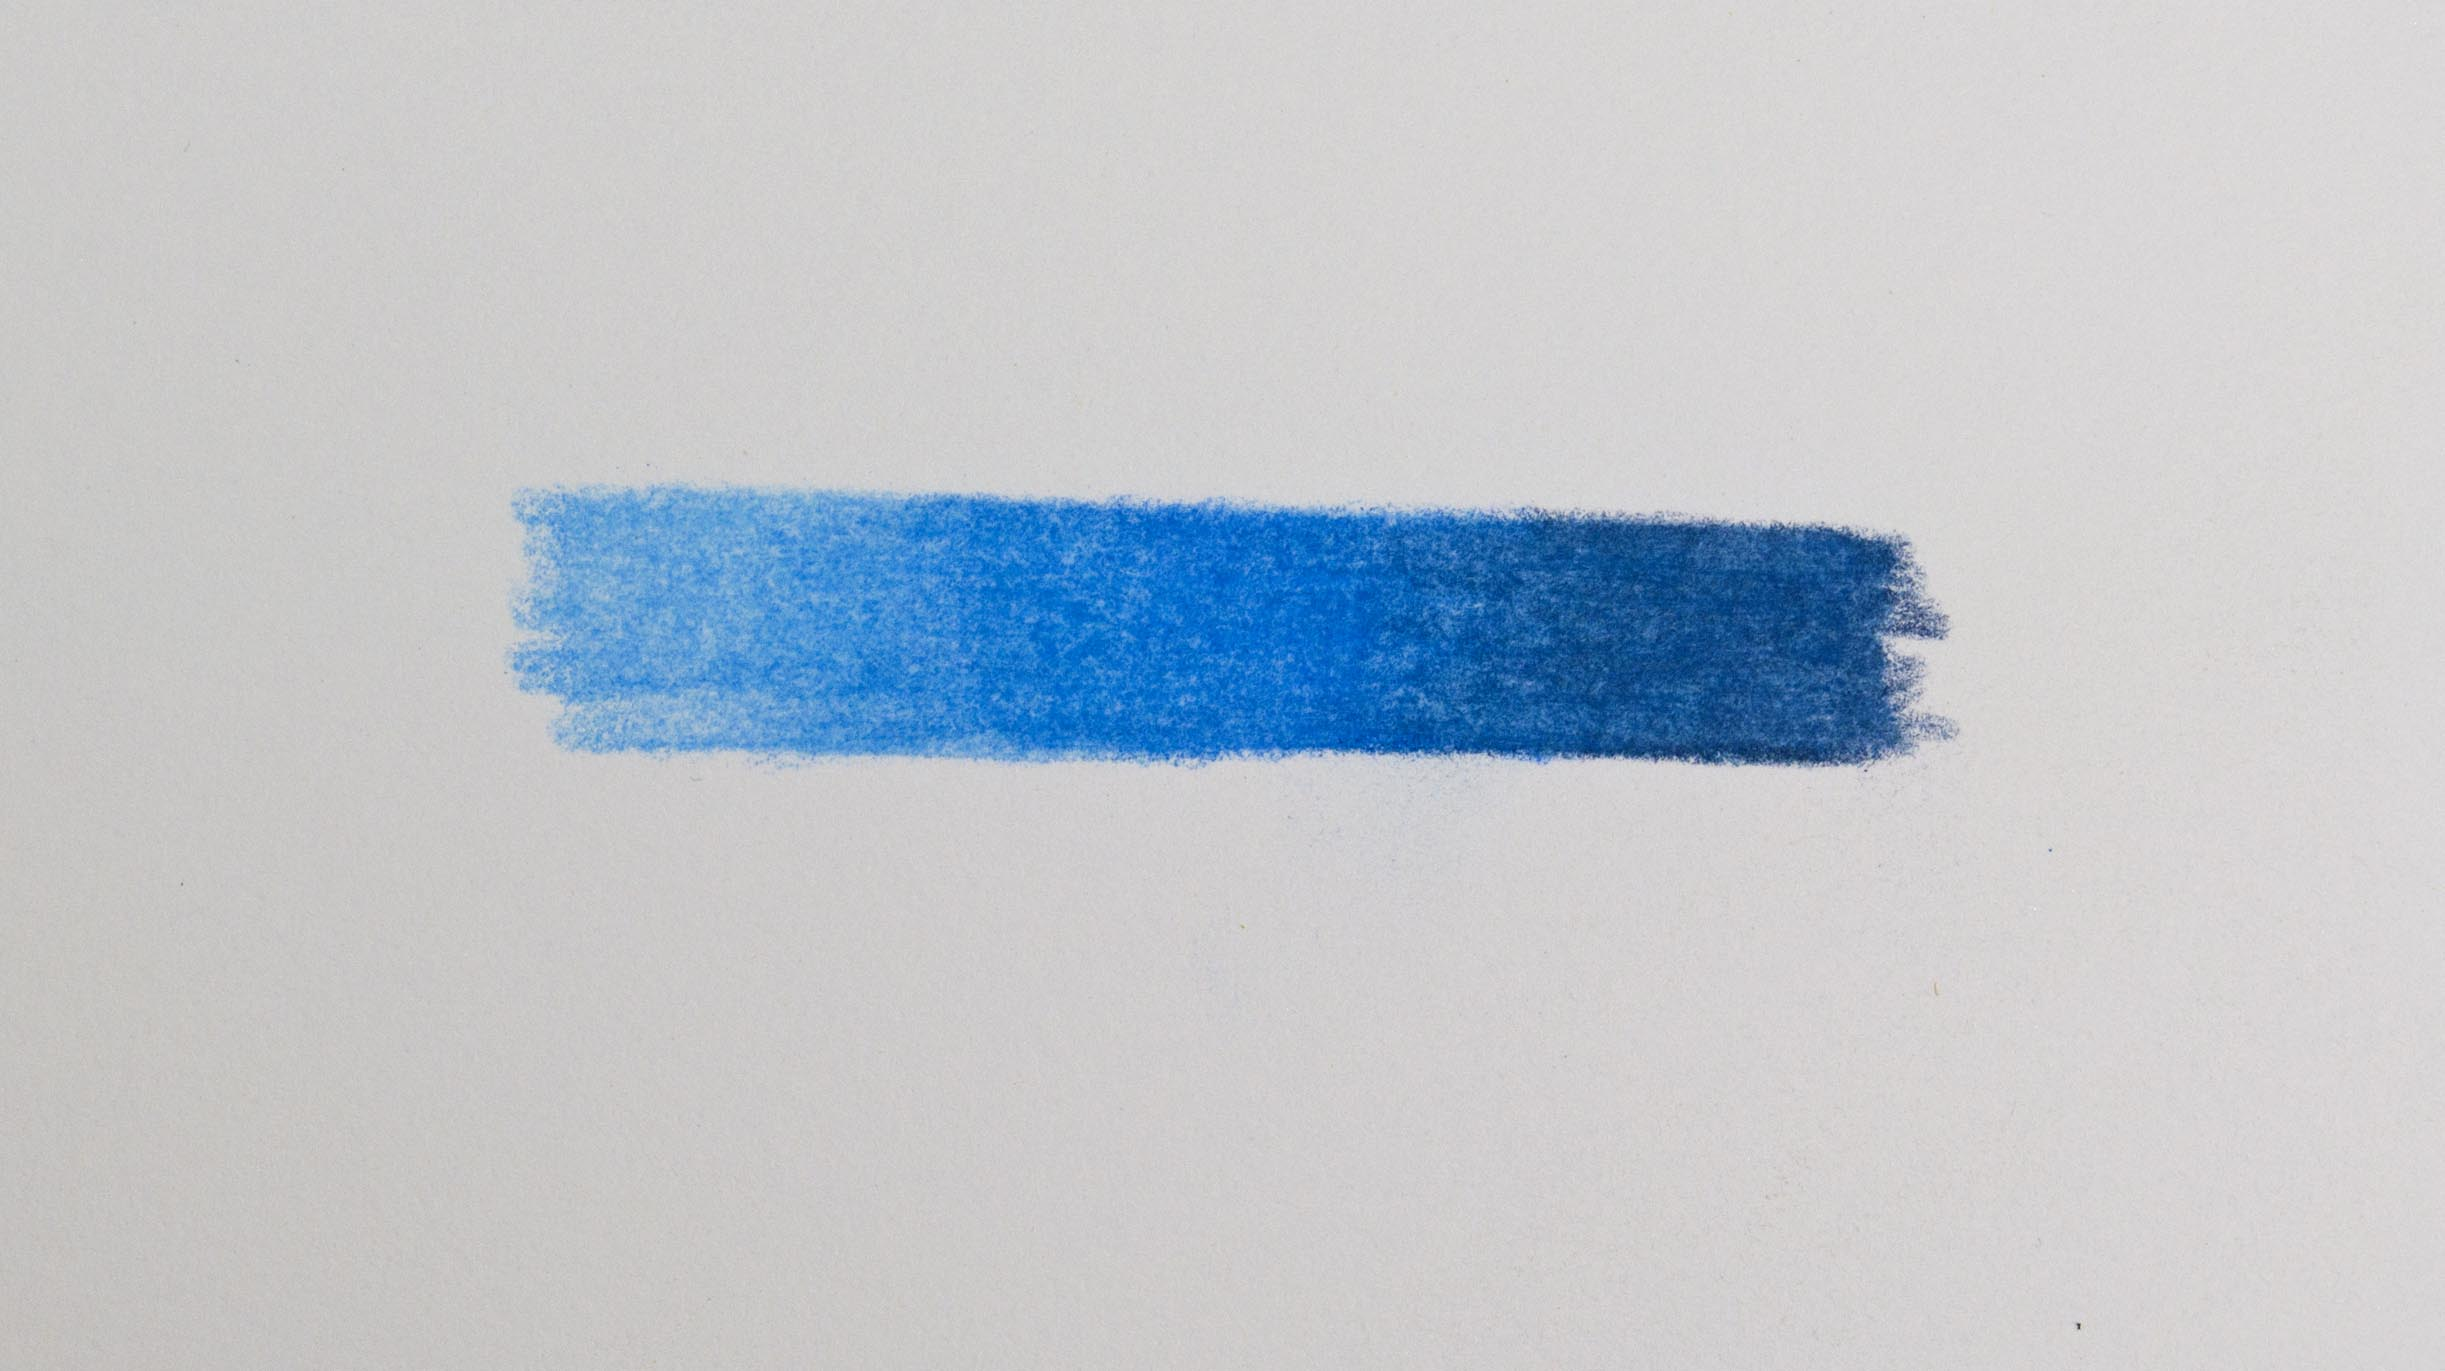 Three ProColour Blue Pigments Blended